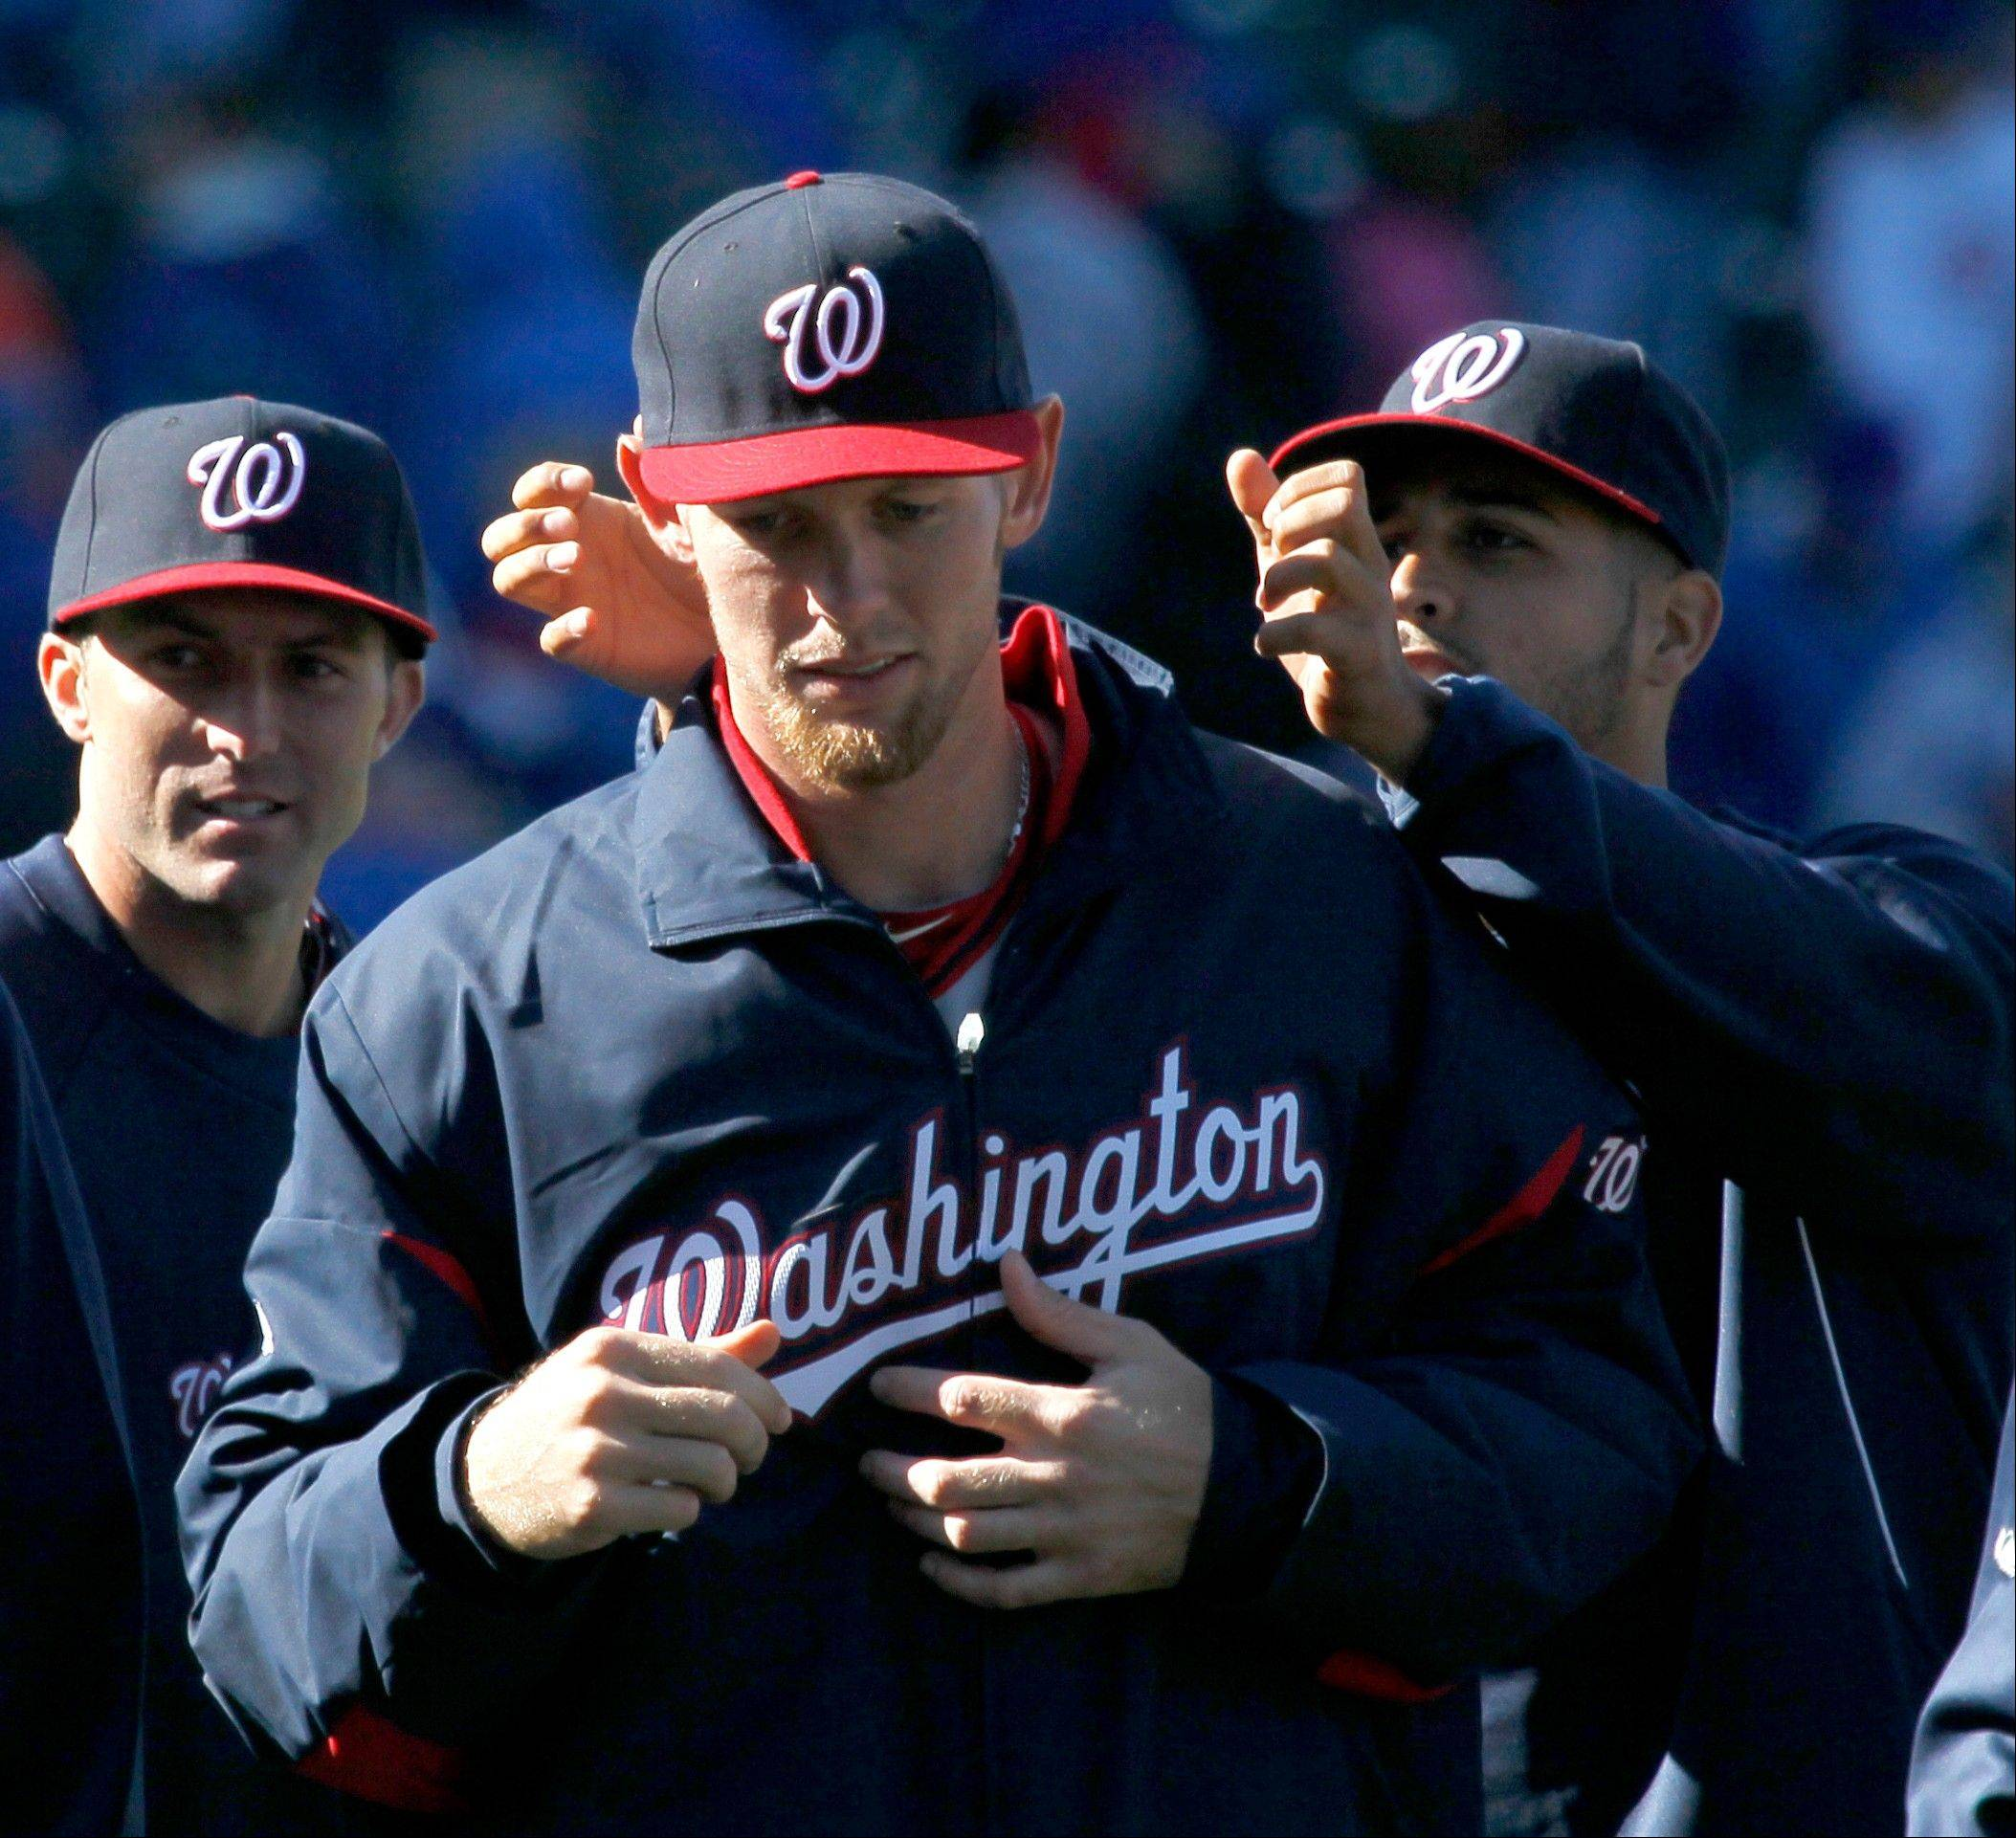 An unidentified teammate reaches behind Washington Nationals starting pitcher Stephen Strasburg and grabs his ears as they celebrate after their 2-1 win in an opening day baseball game against the Chicago Cubs, Thursday, April 5, 2012, in Chicago.